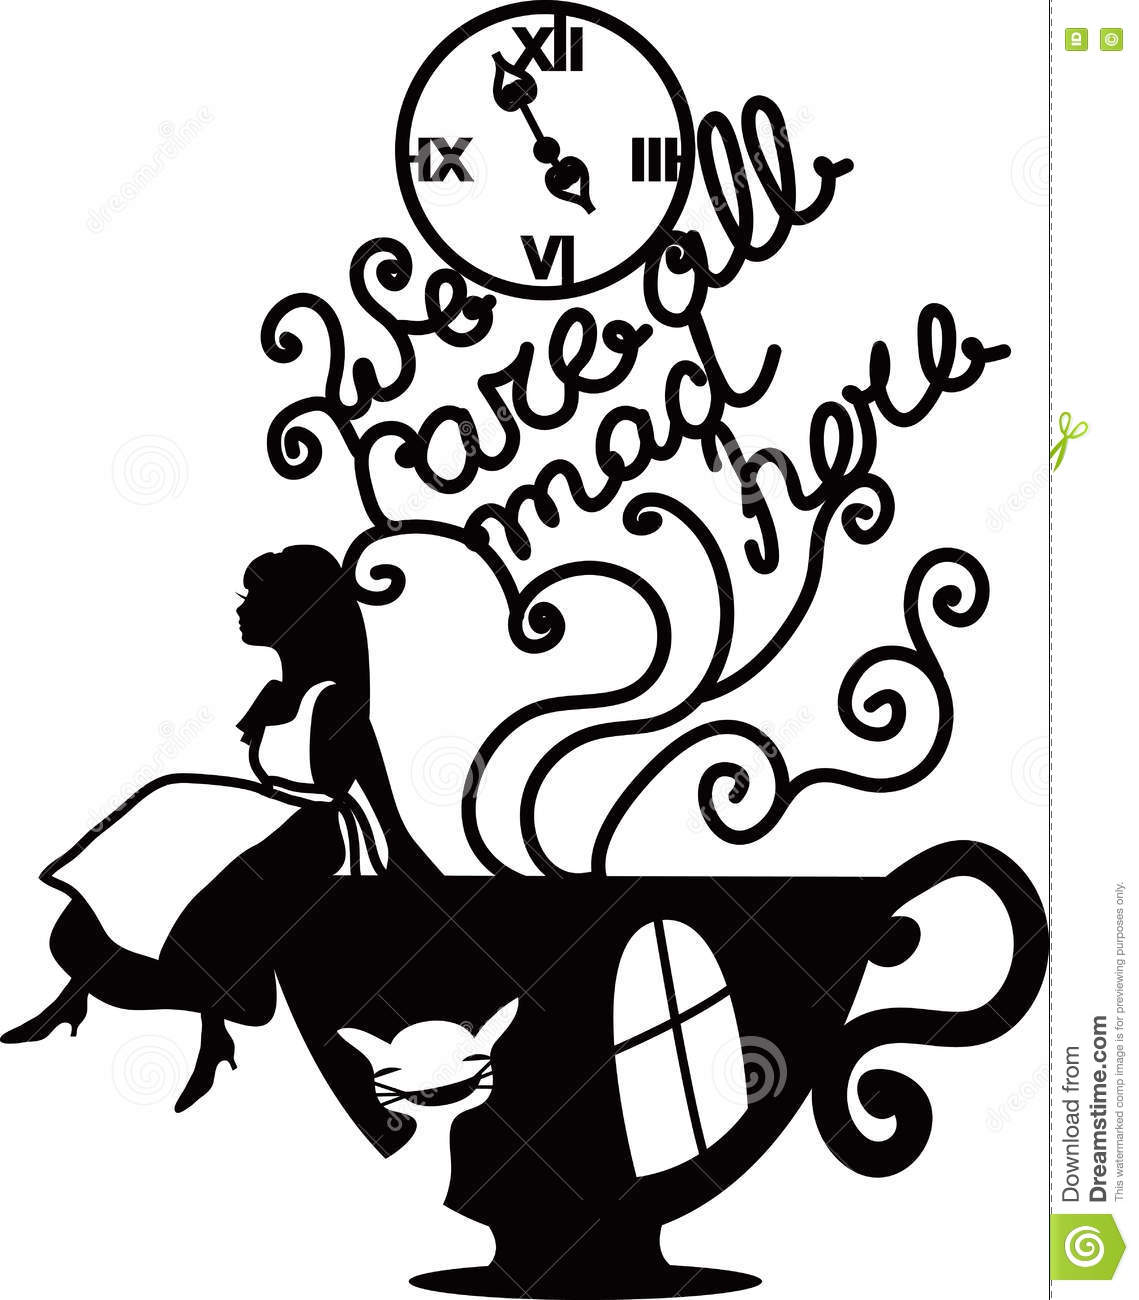 Alice in wonderland black and white clipart jpg free library Alice in wonderland clipart black and white 1 » Clipart Station jpg free library